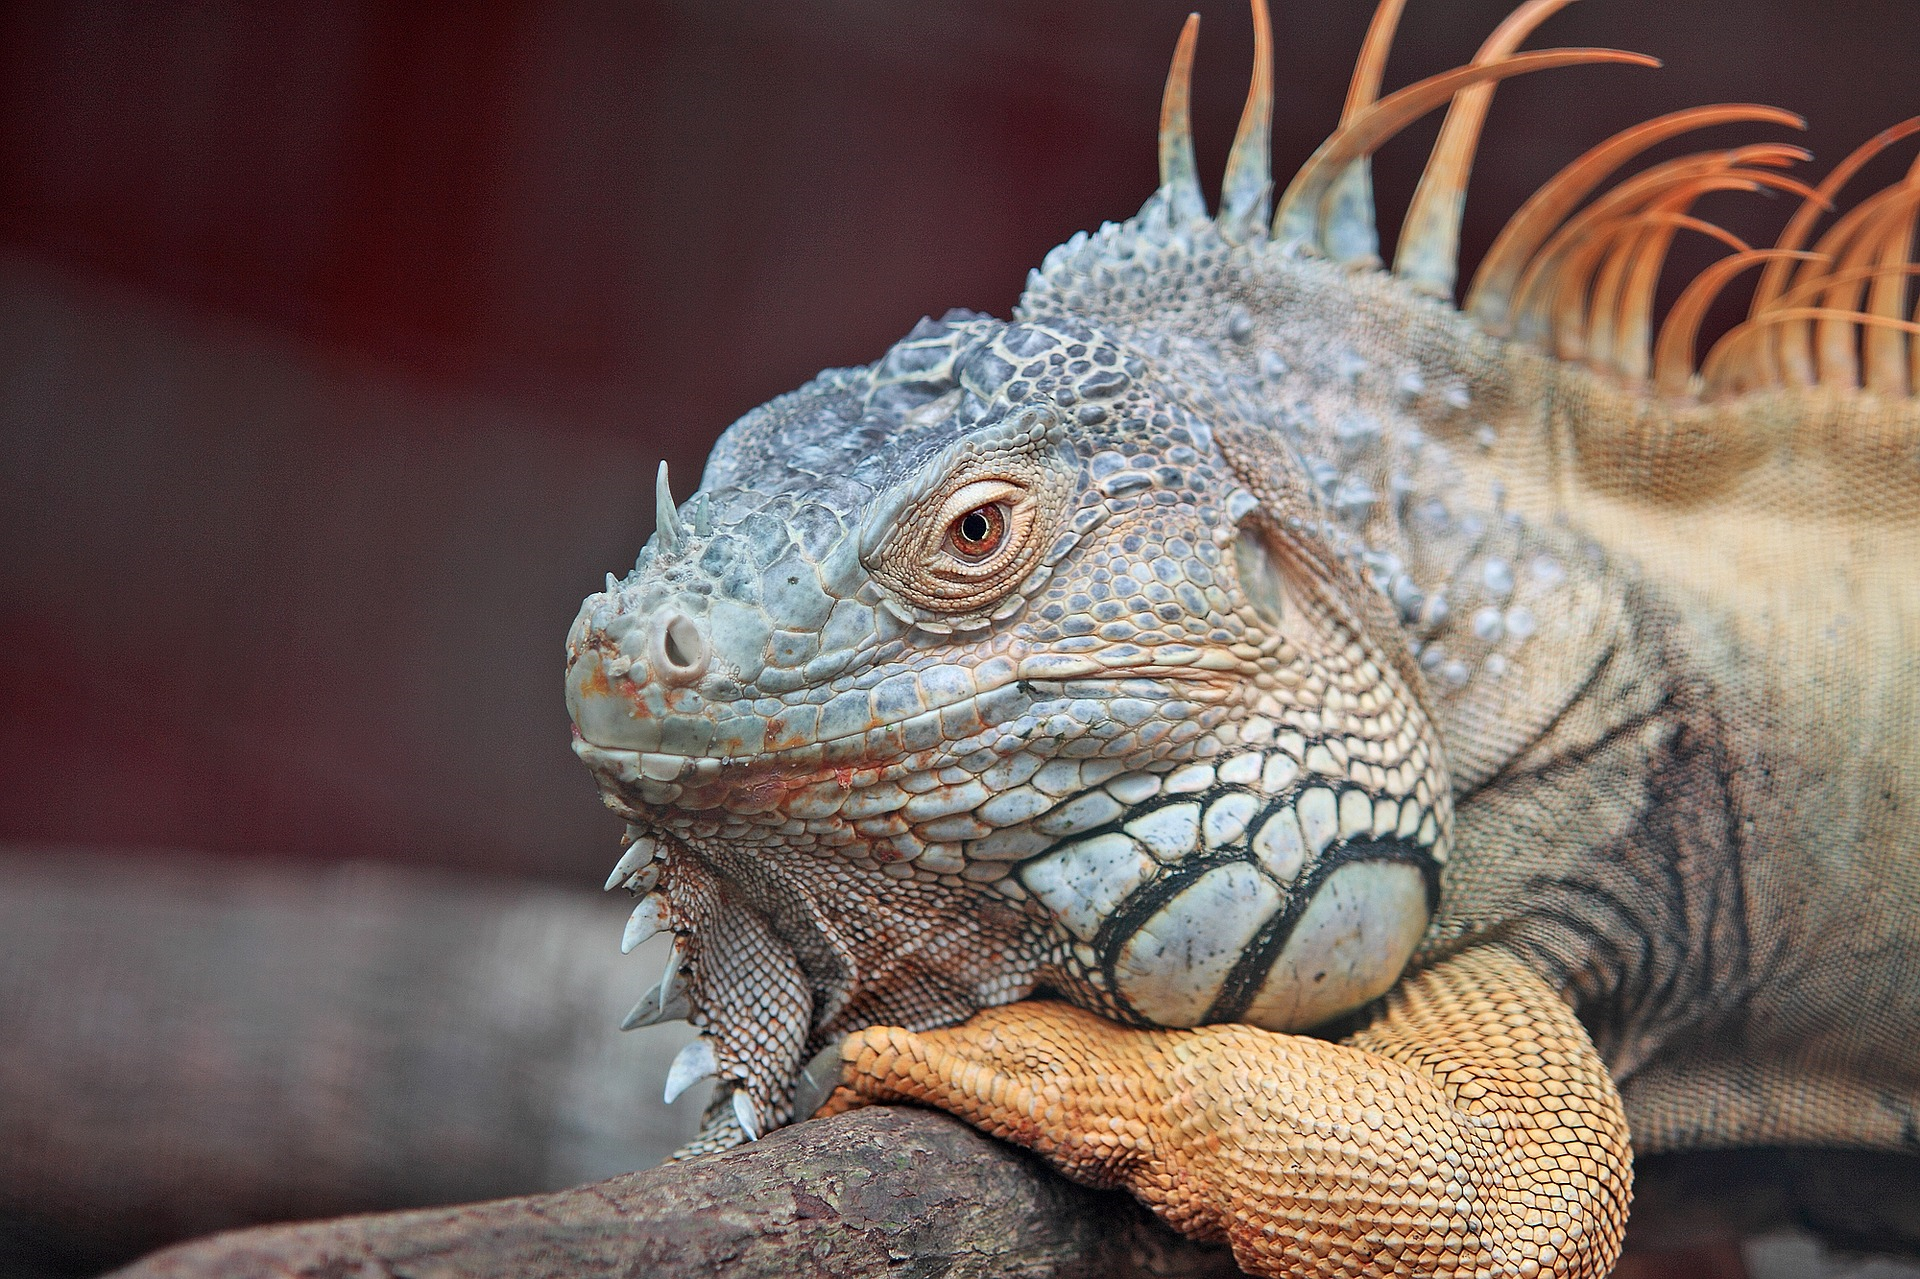 Photo of lounging iguana & Can My Reptile Give Me a Disease? - The Tye-Dyed Iguana u0026 Indoor ... azcodes.com